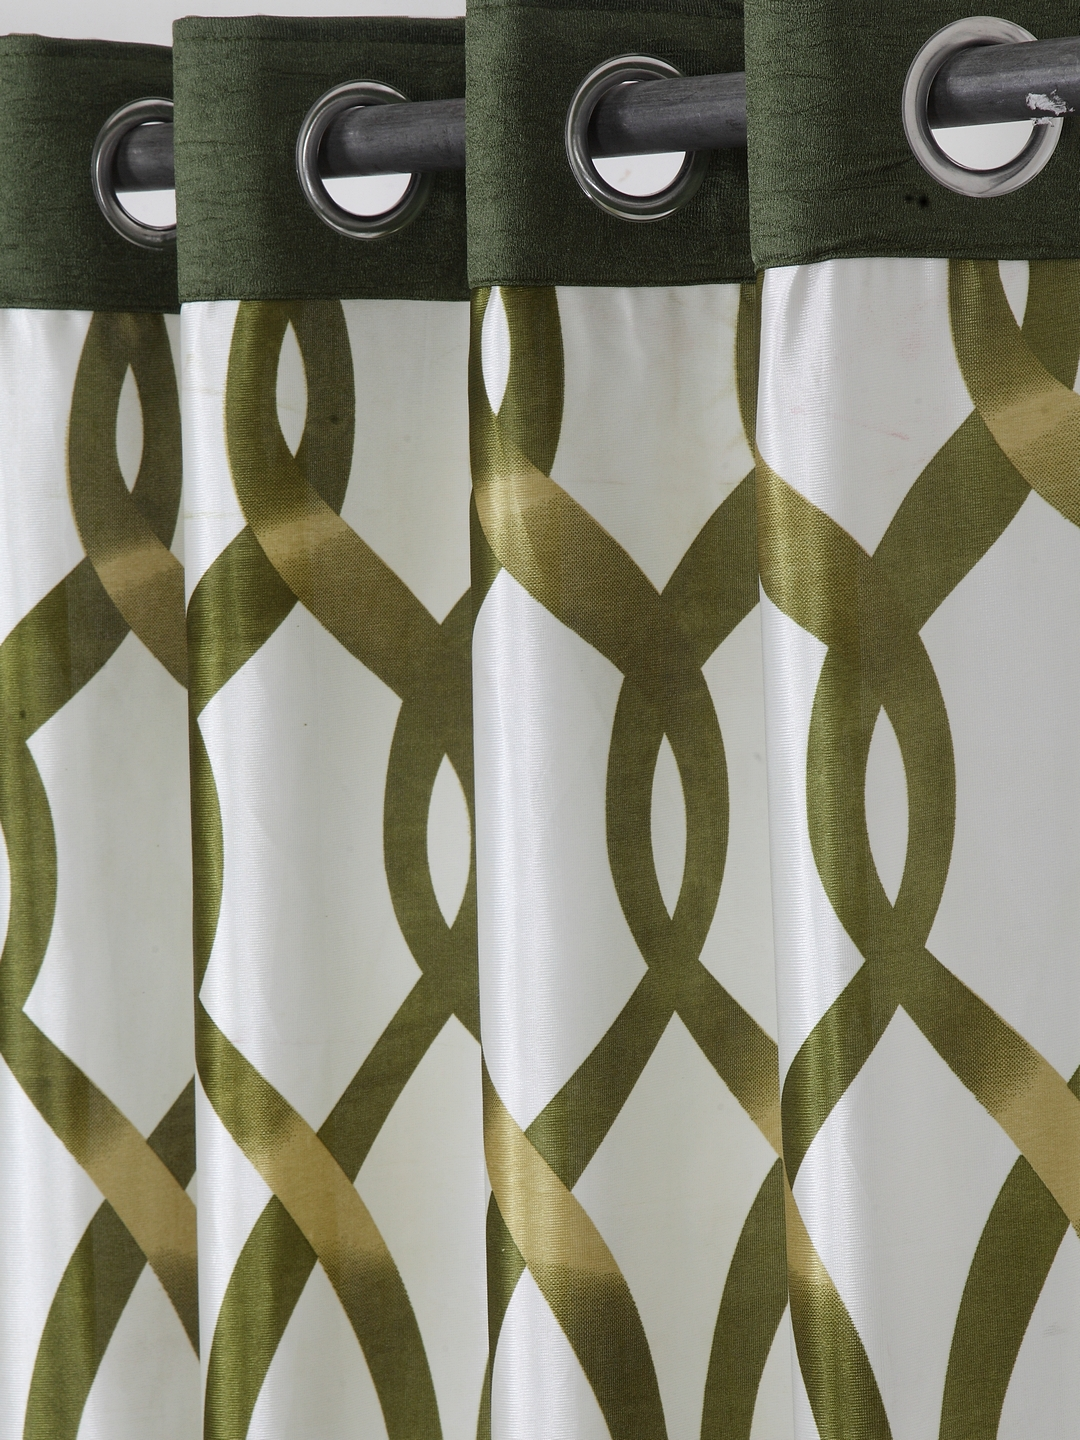 Polyester Printed Window Curtains for Bedroom, Kitchen, Kids or Living Room-012_Set of 2